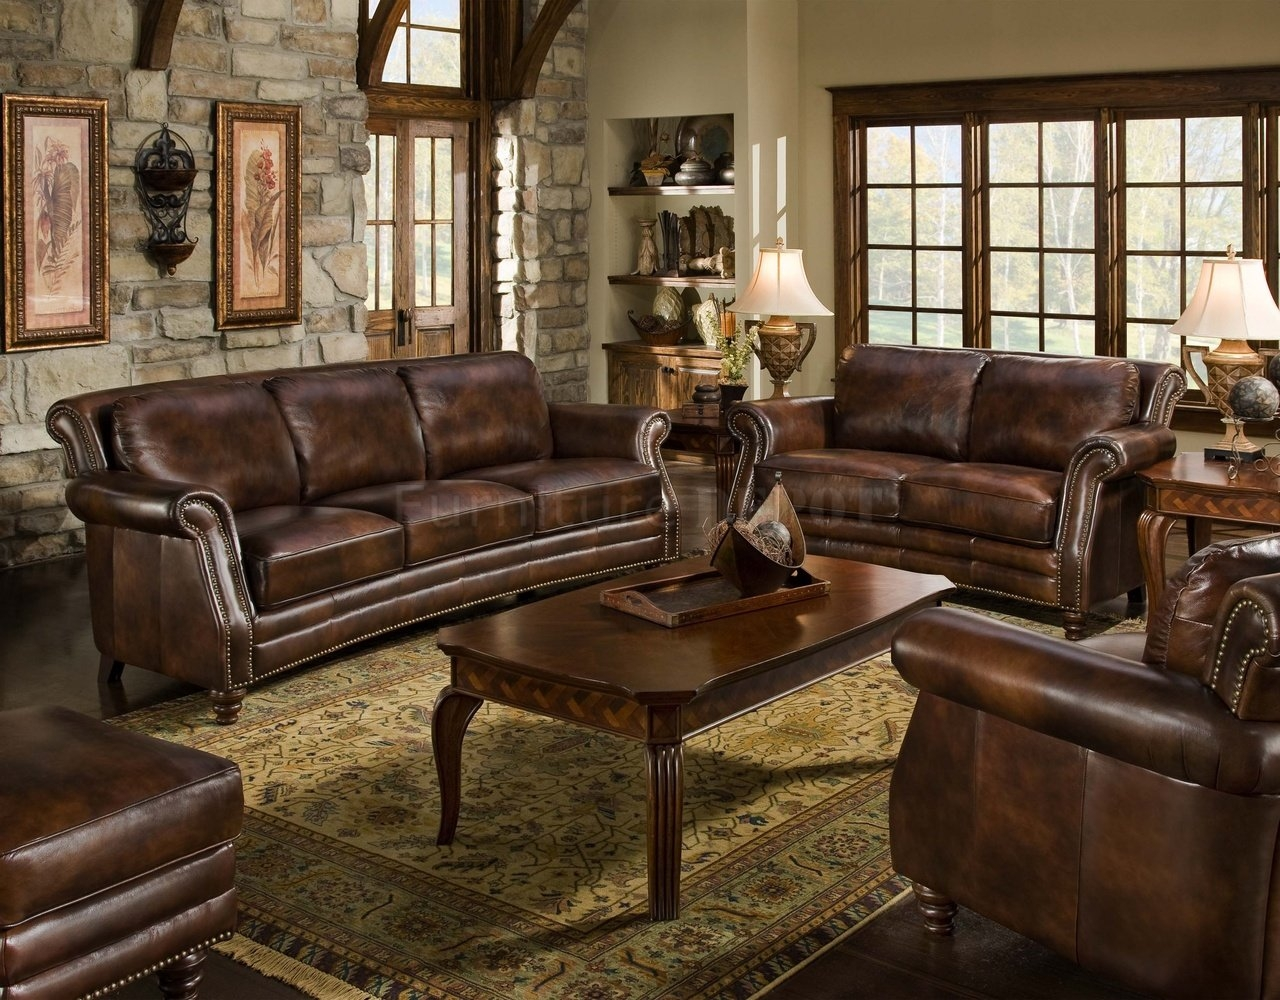 Traditional Leather Sectional Sofa And Brown Sofa All Leather 12 Regarding Traditional Leather Couch (Image 10 of 15)